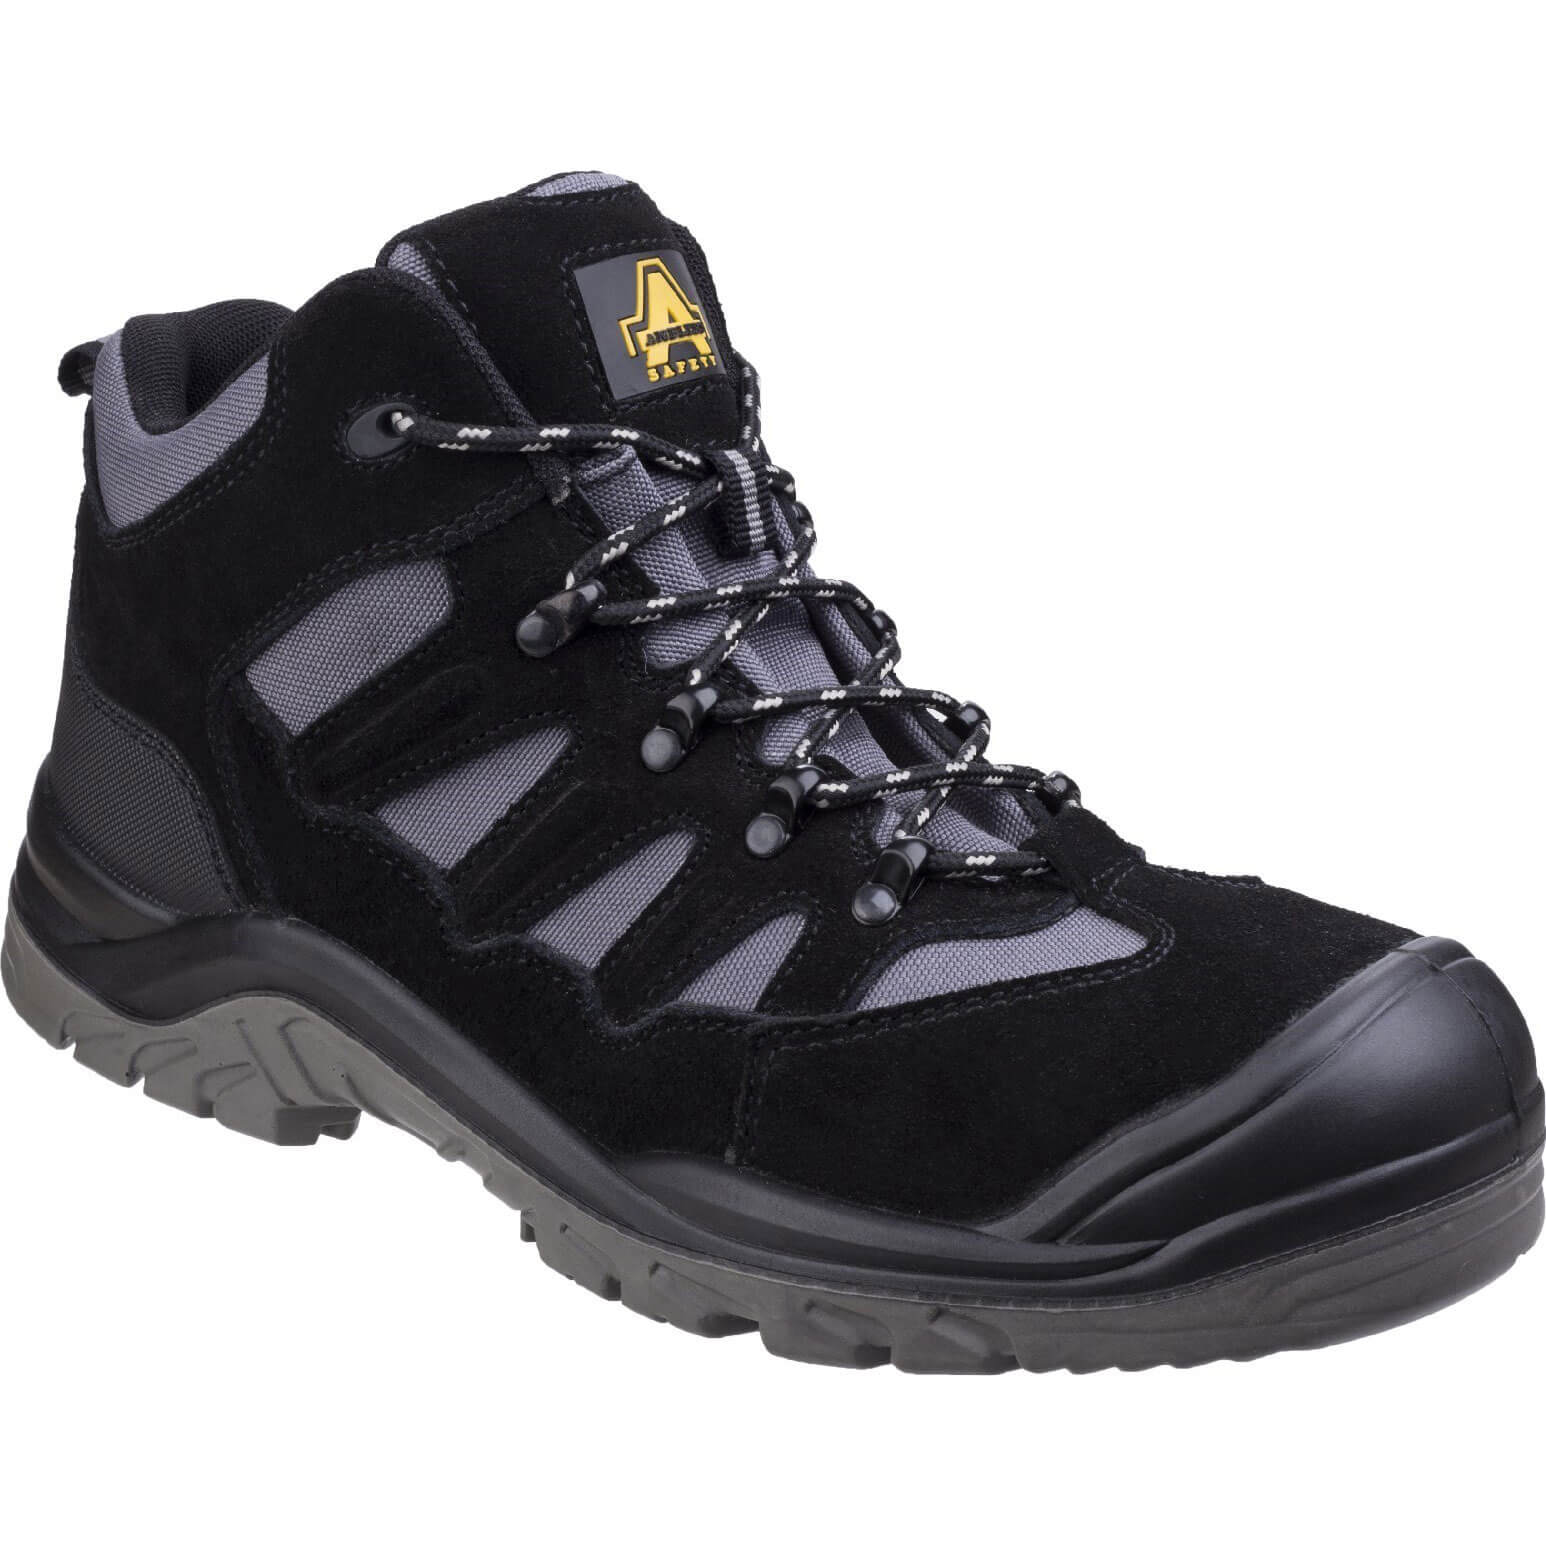 CHEAP Amblers Mens Safety As251 Lightweight Safety Hiker Boots Black Size 11 – Men's Footwear